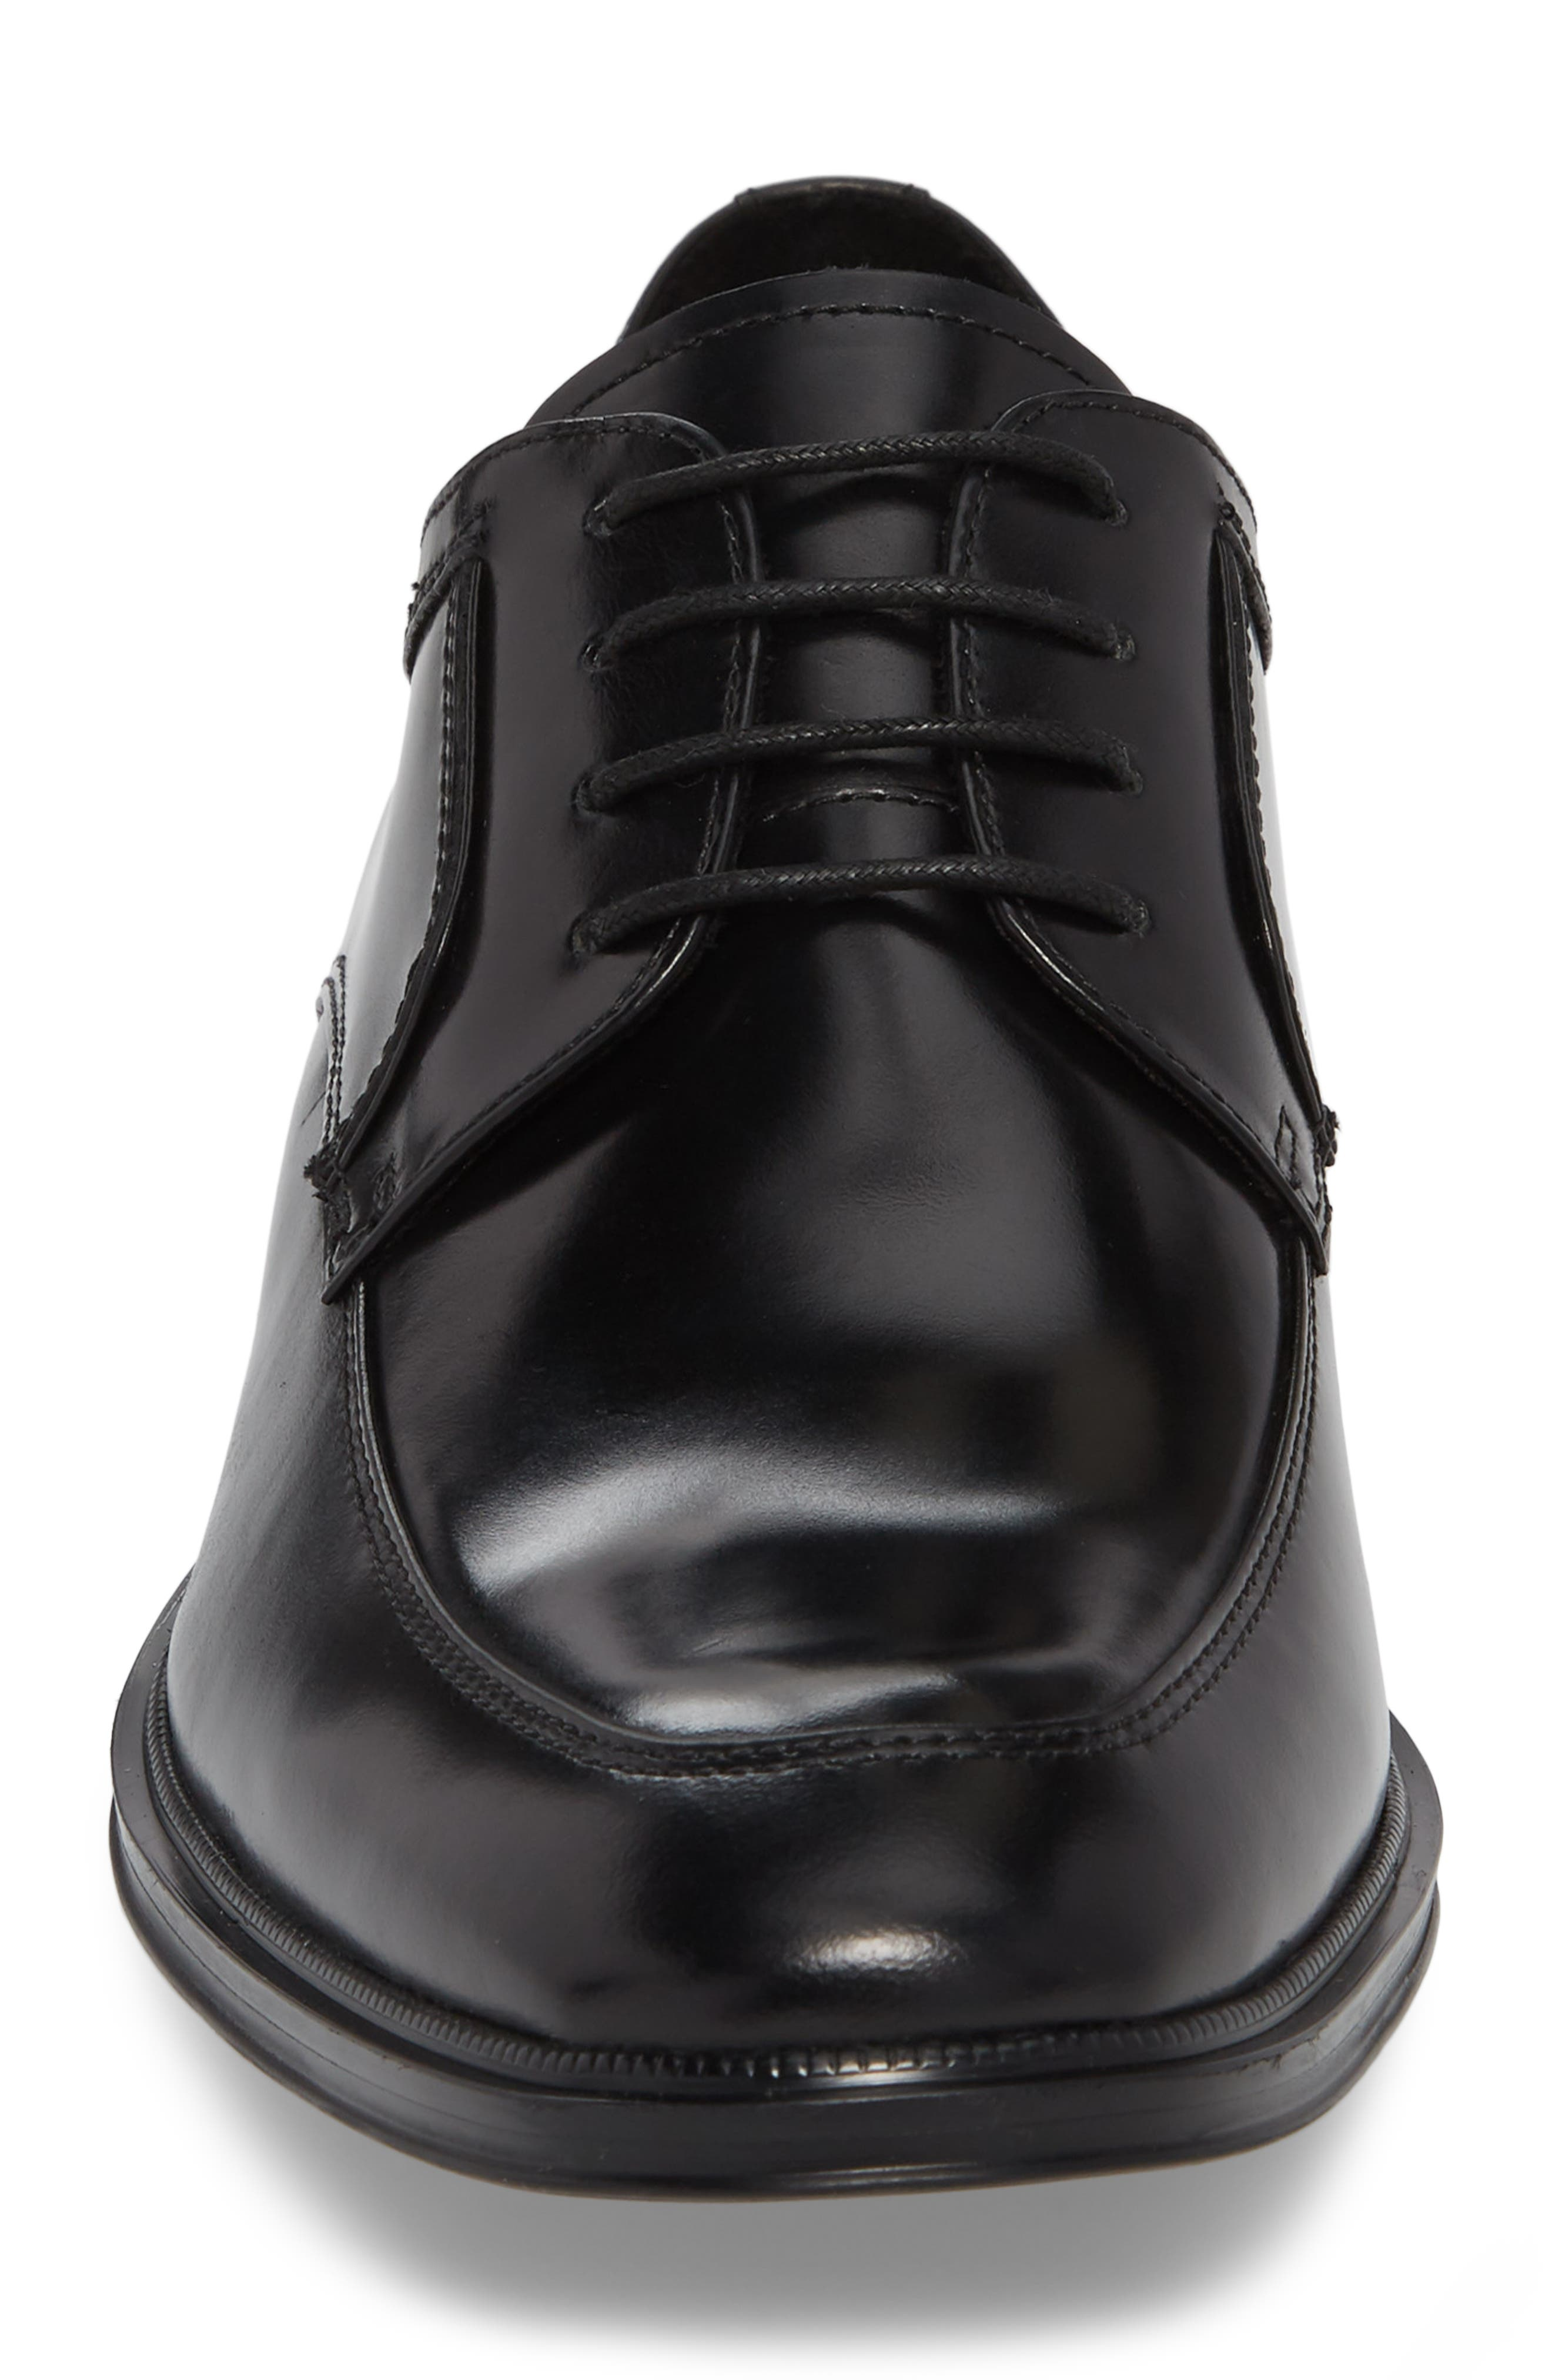 KENNETH COLE NEW YORK, Tully Apron Toe Derby, Alternate thumbnail 4, color, BLACK LEATHER